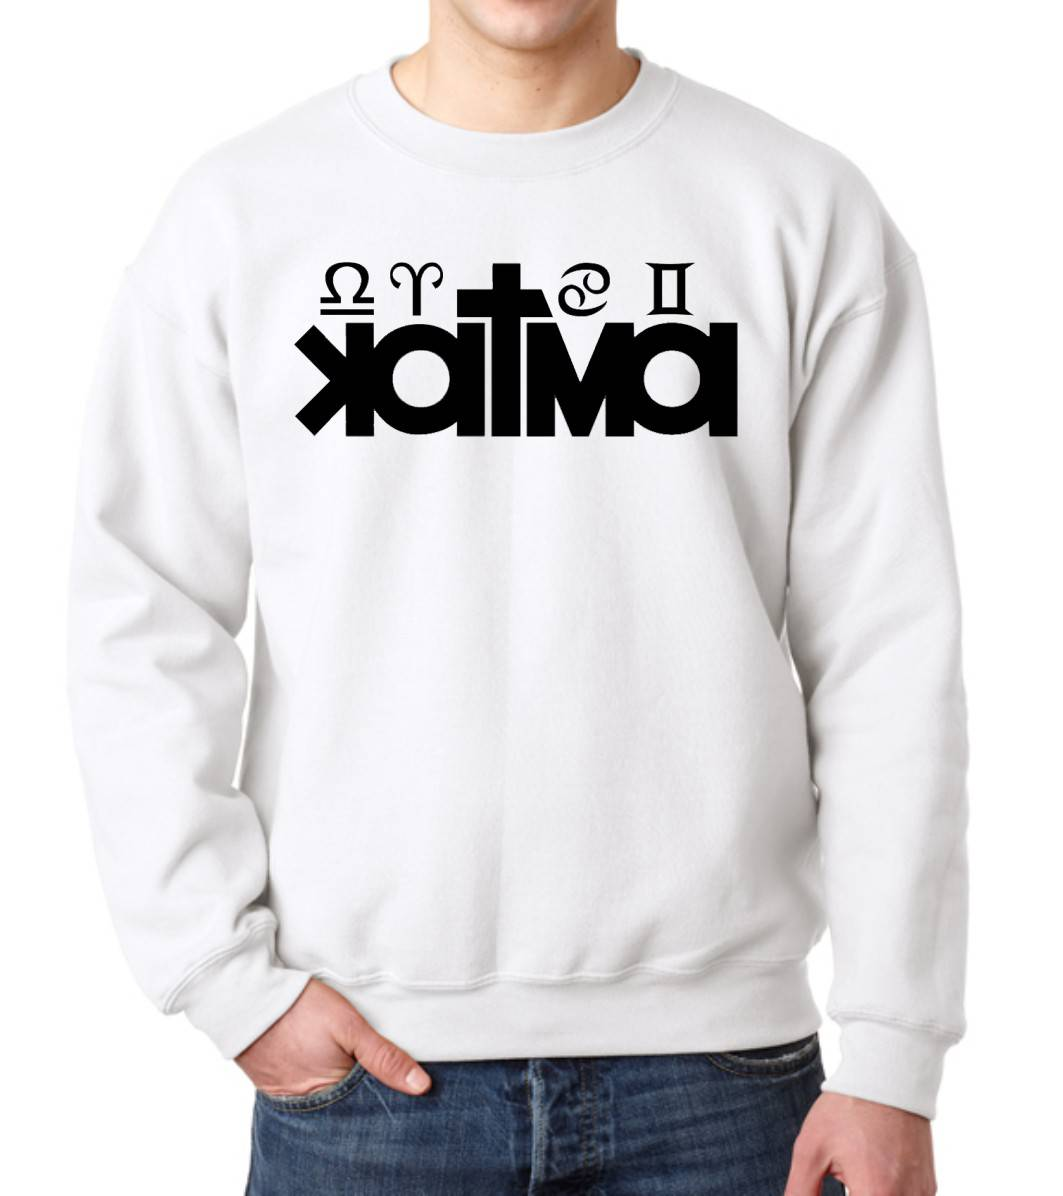 KATMA OFFICIAL FLEECE